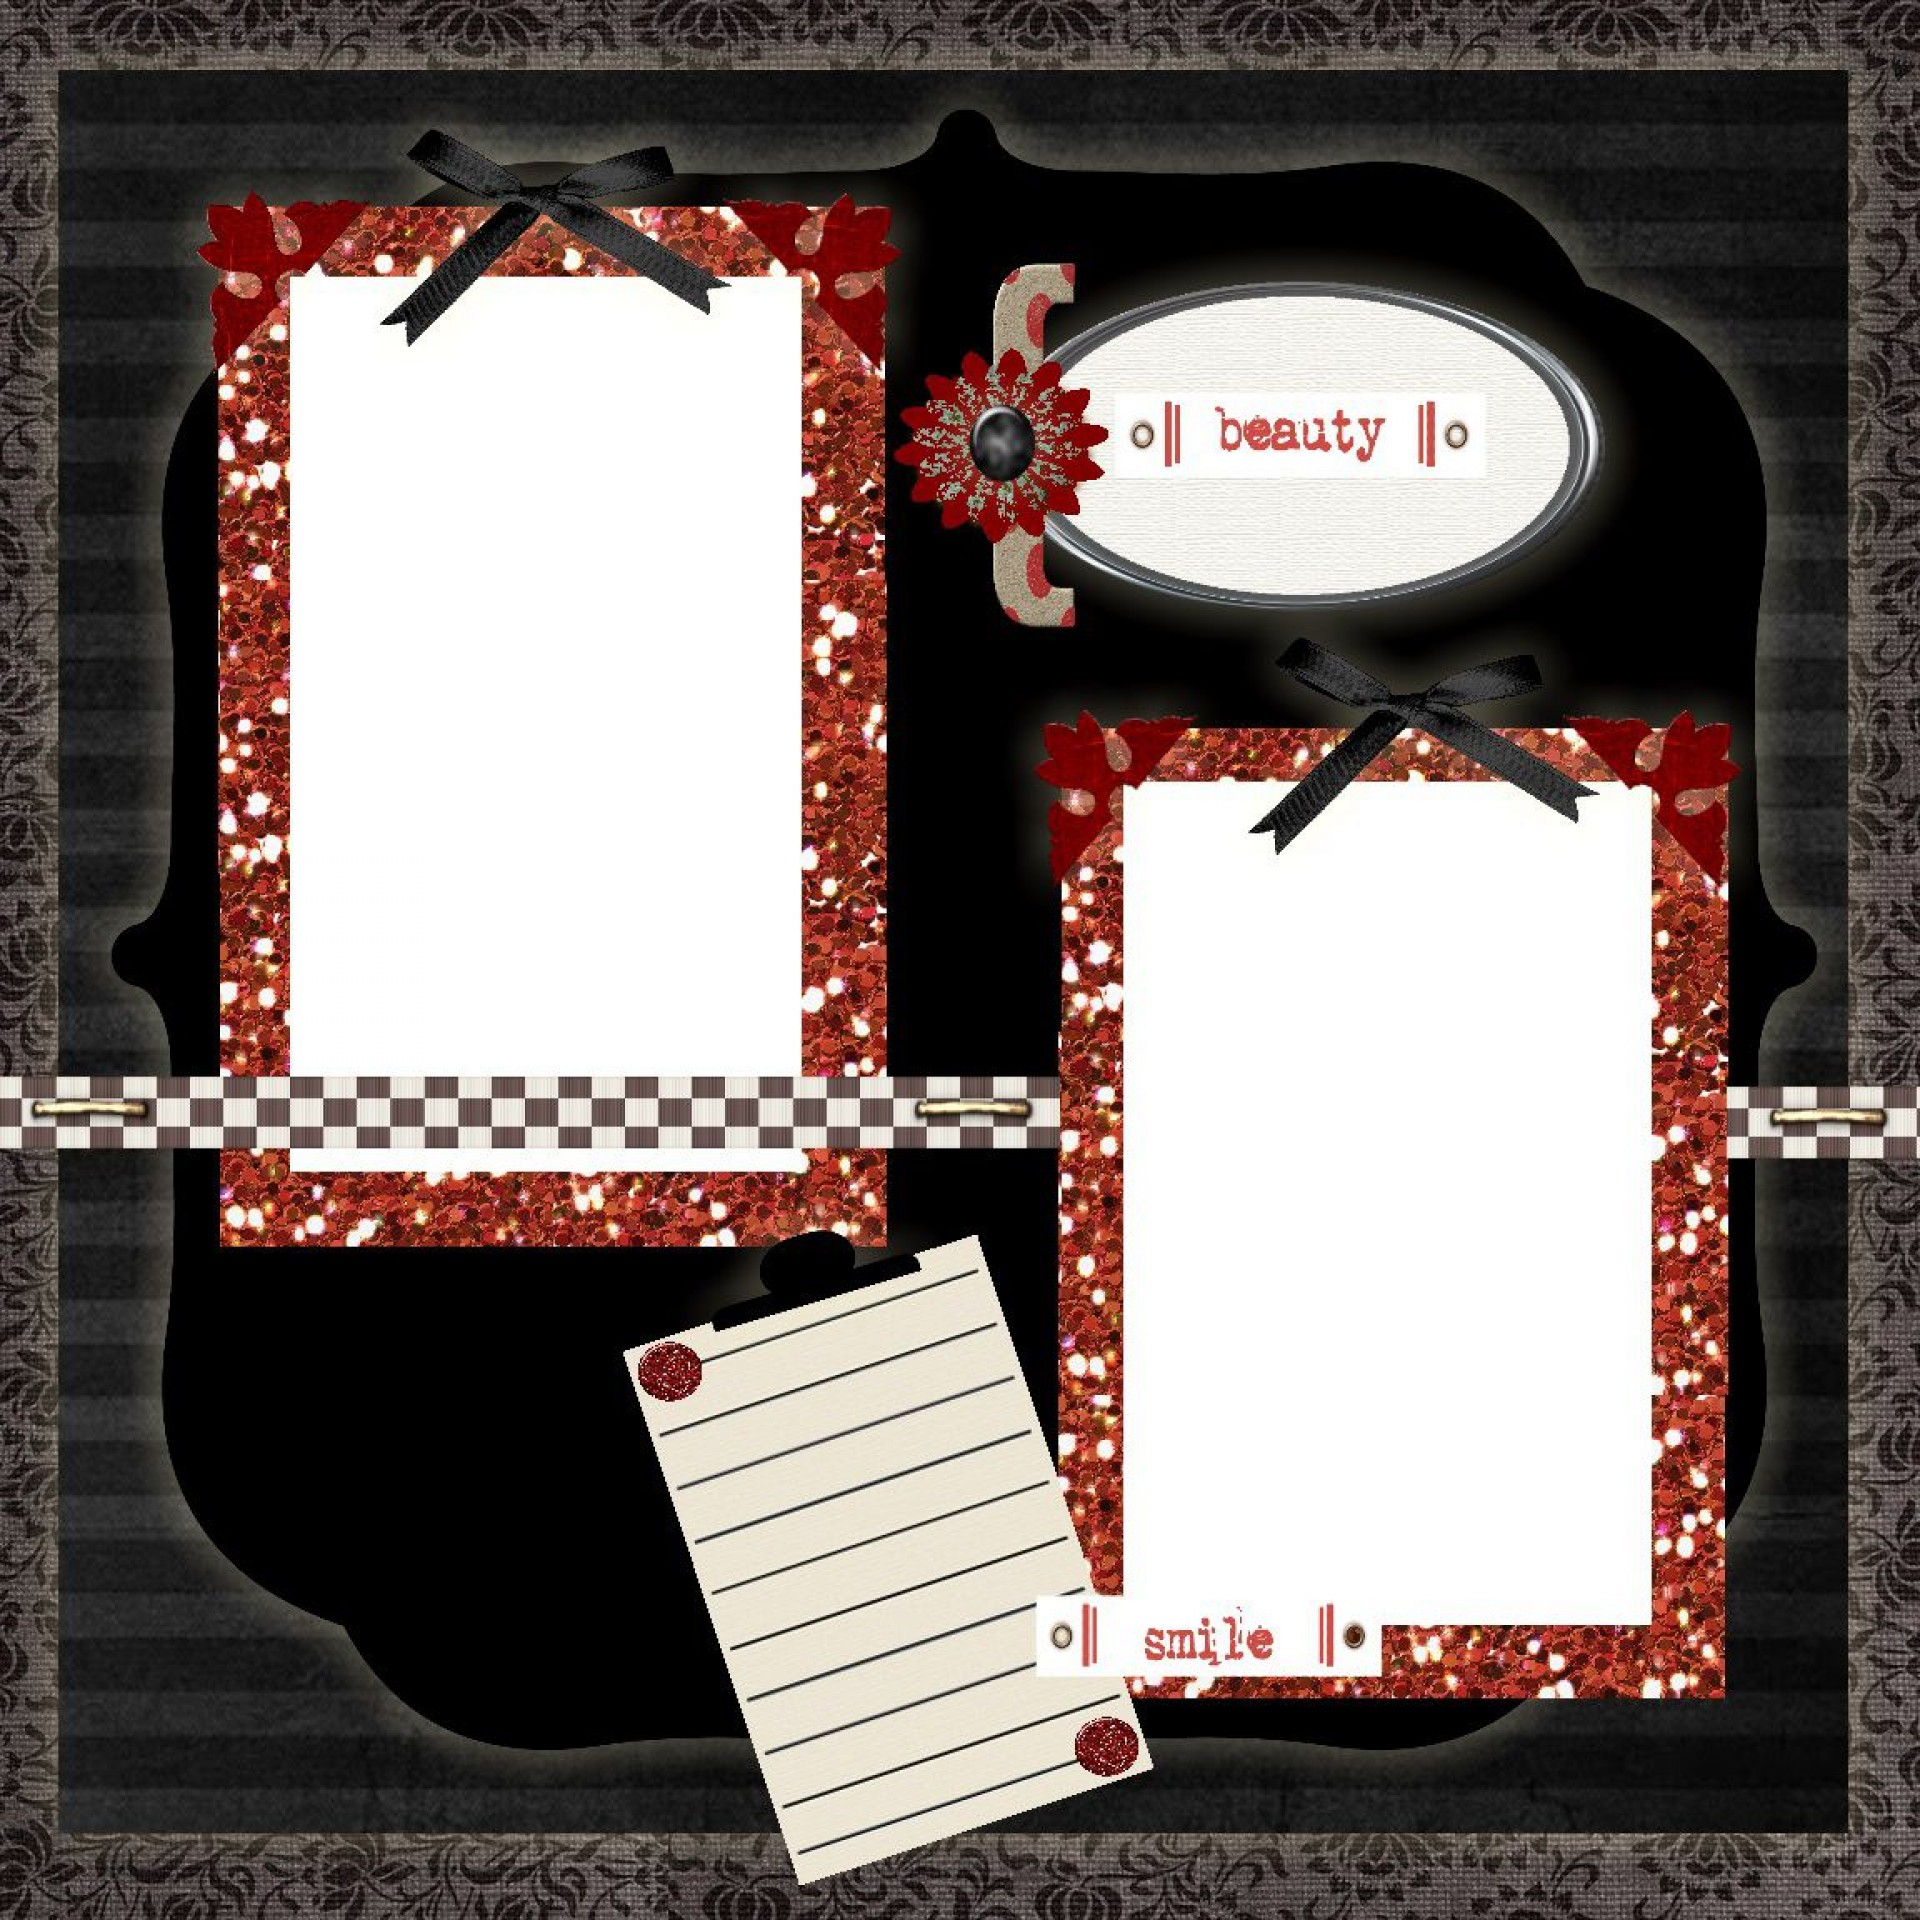 008 Archaicawful Free Printable Scrapbook Template Picture  Templates Paper Frame Layout1920